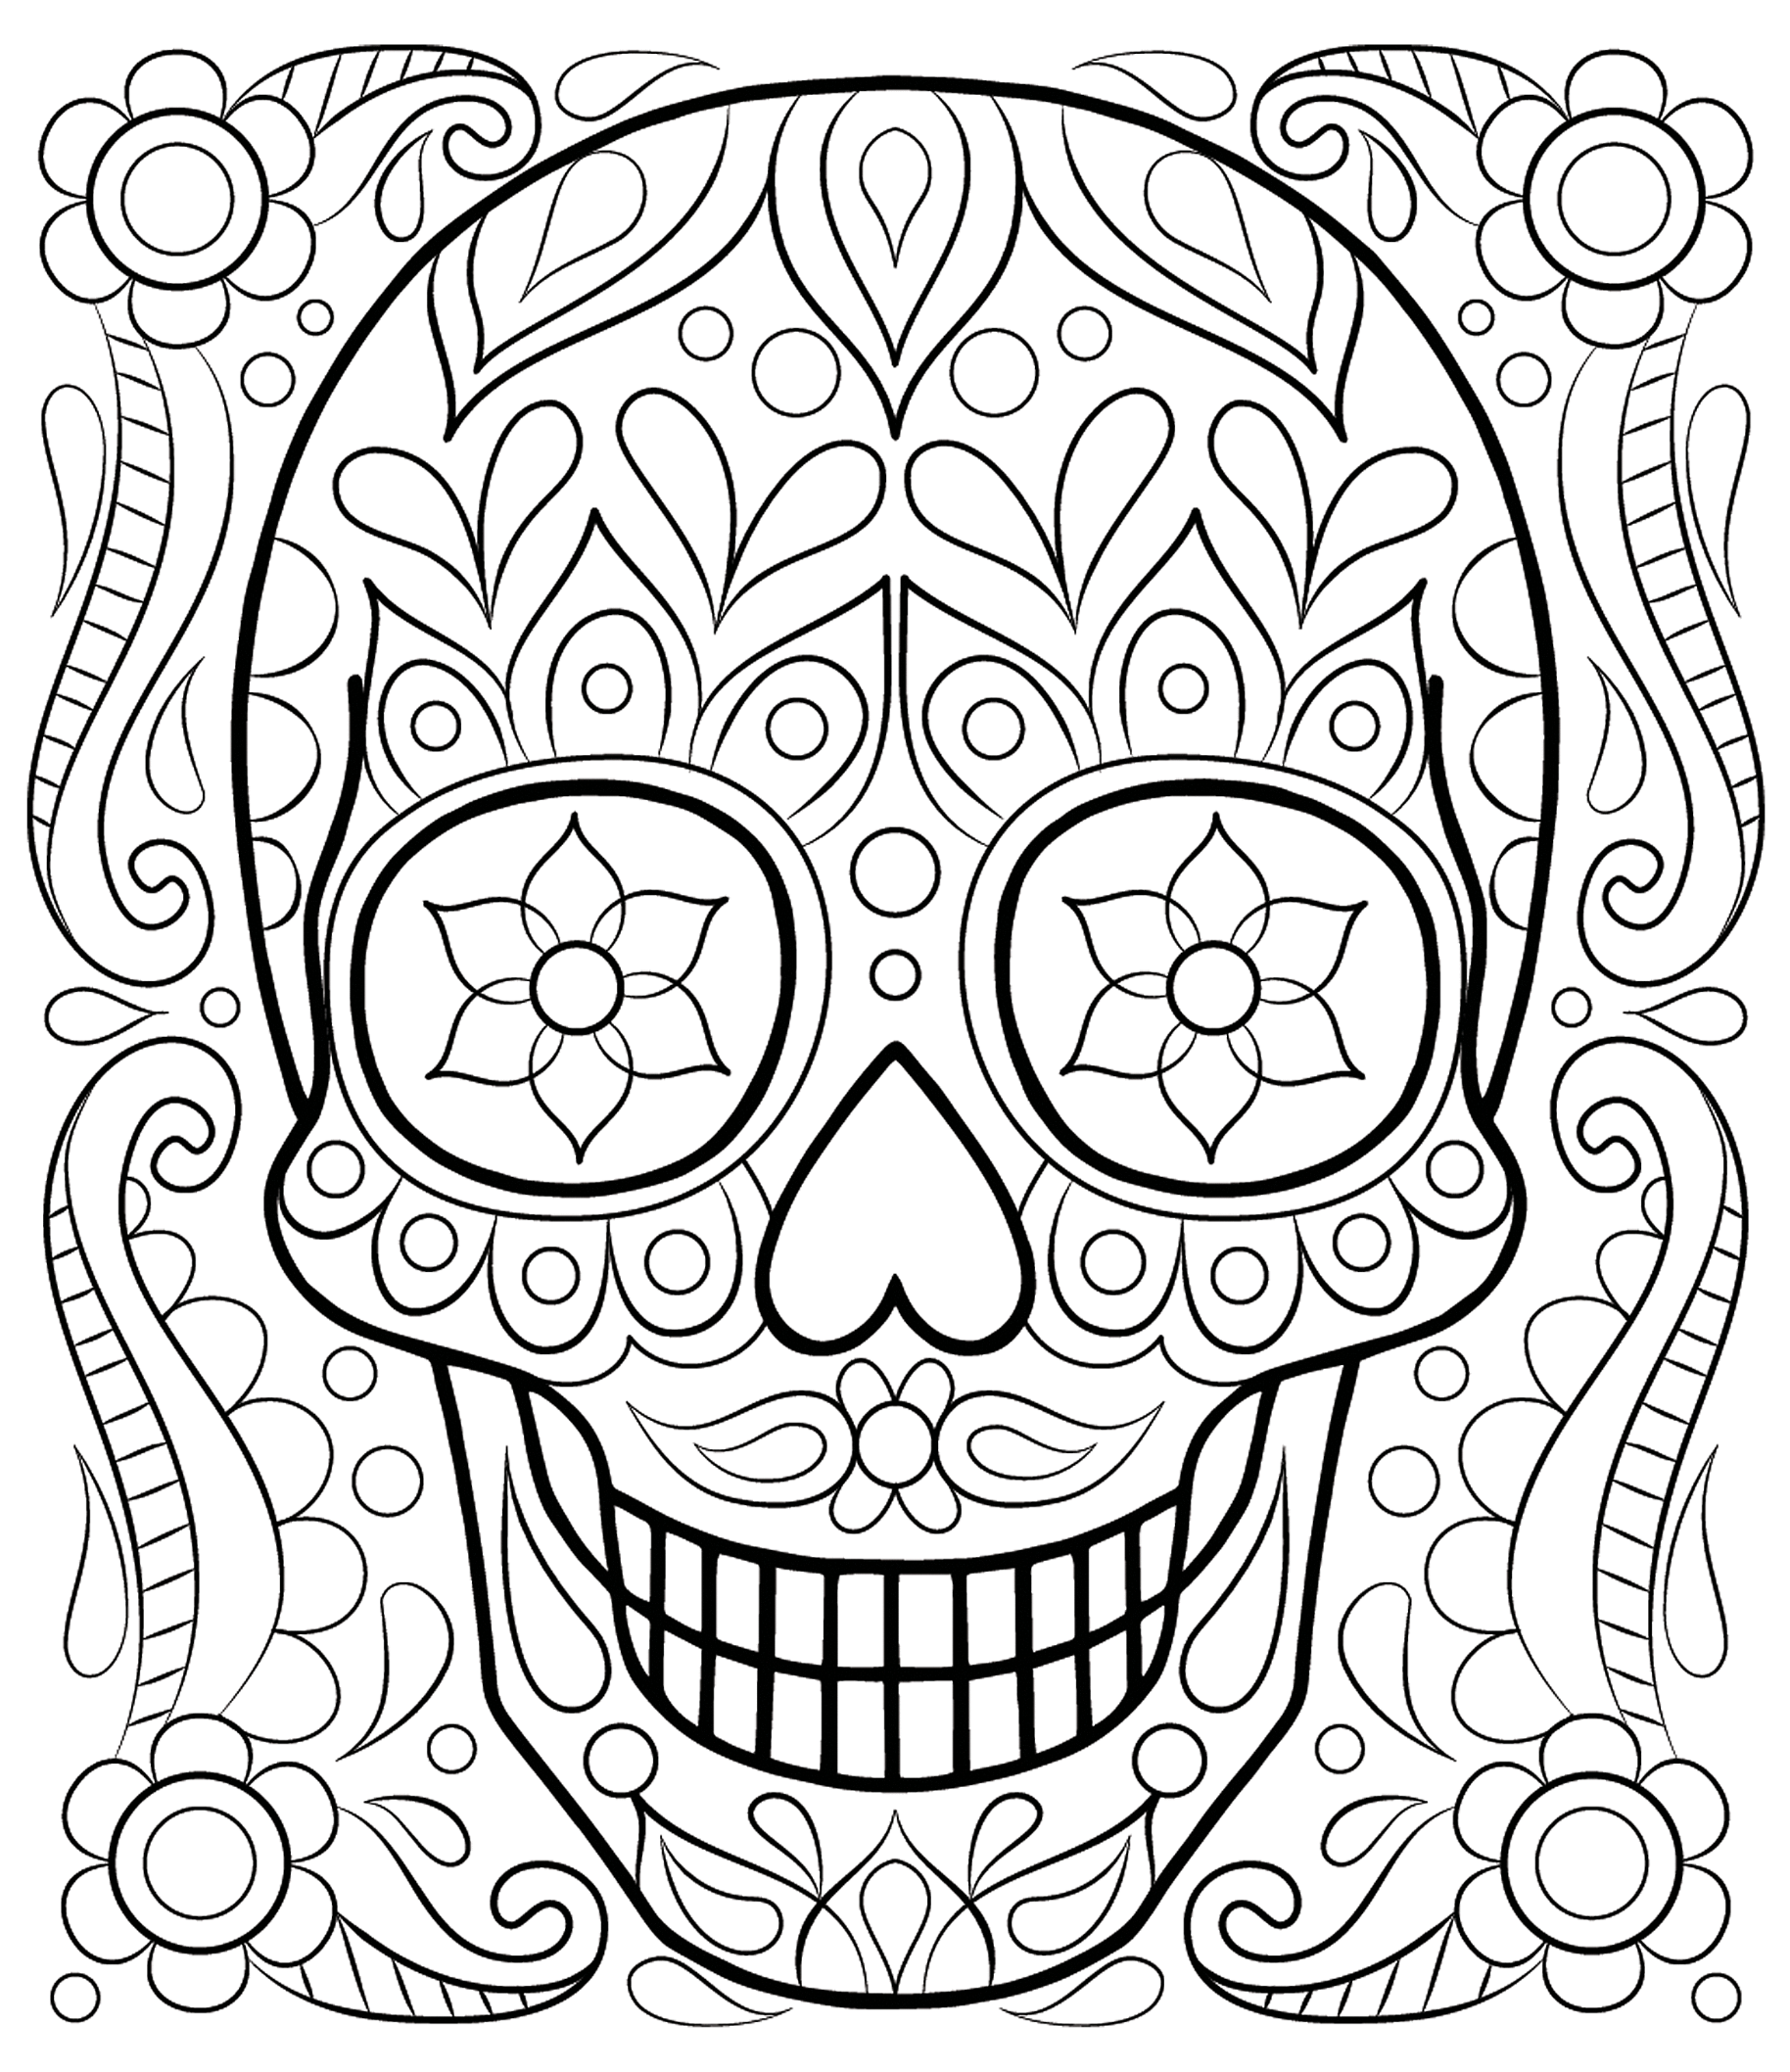 coloring pages of a - photo#5